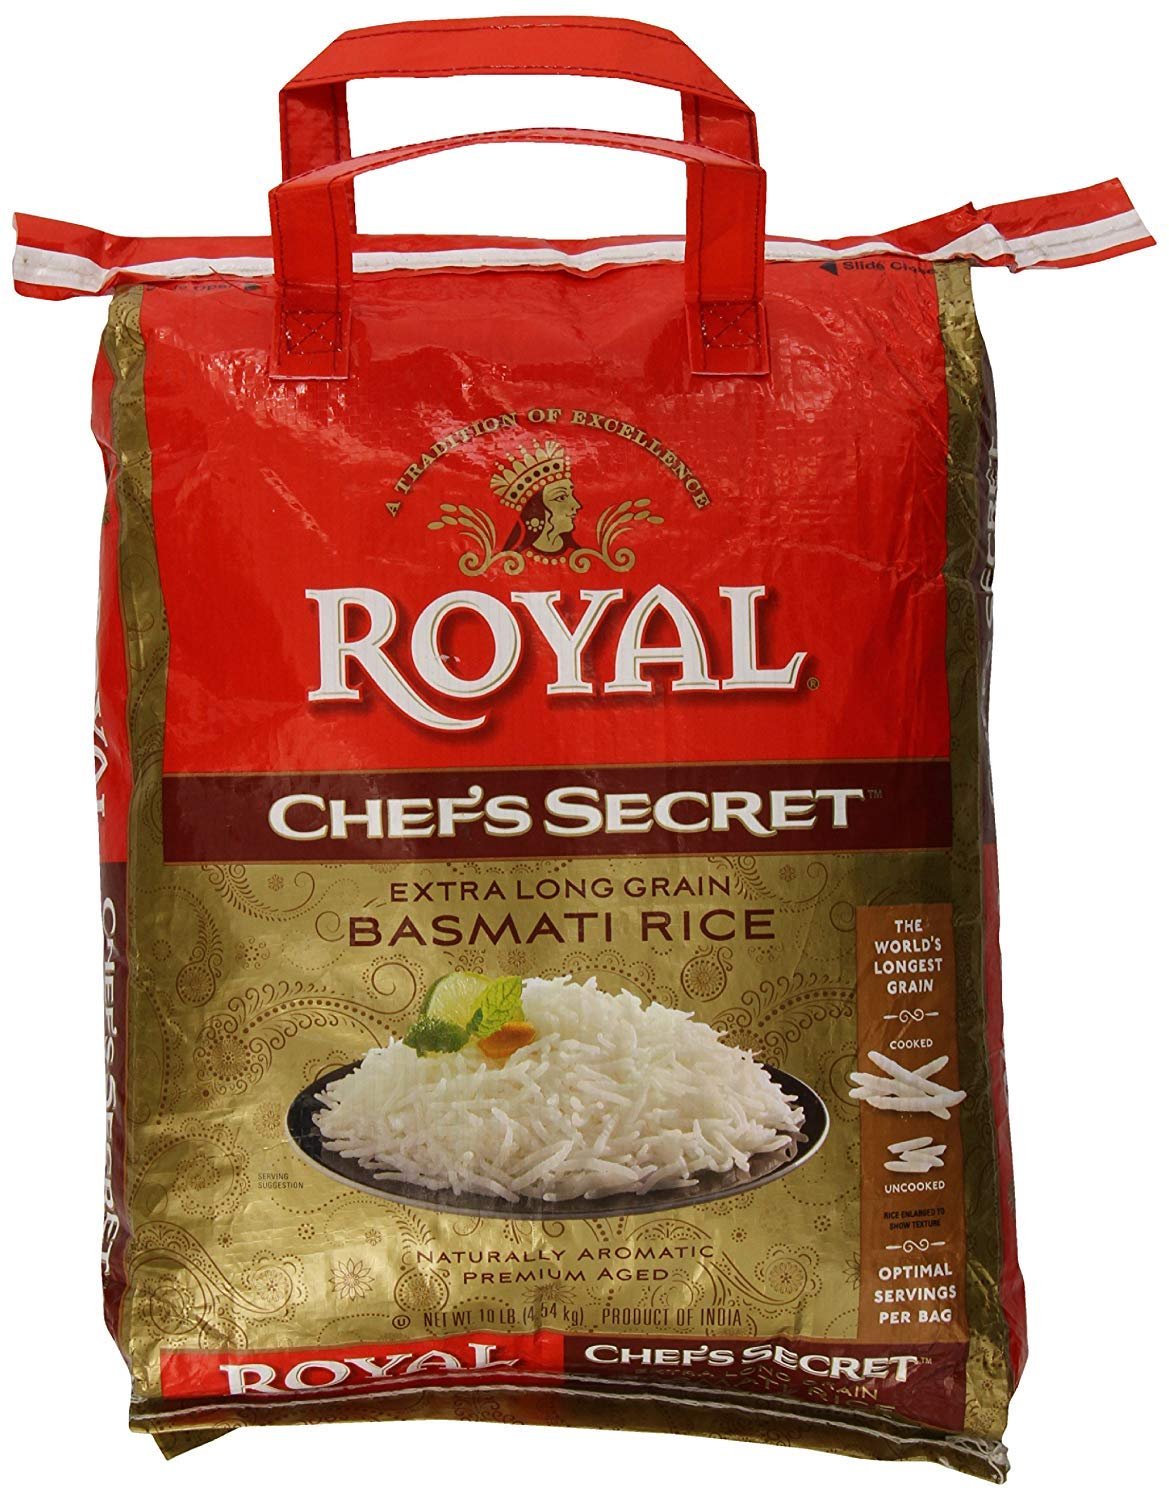 Royal Chef's Secret Extra Long Grain Basmati Rice, 10 Pound - PACK OF 2